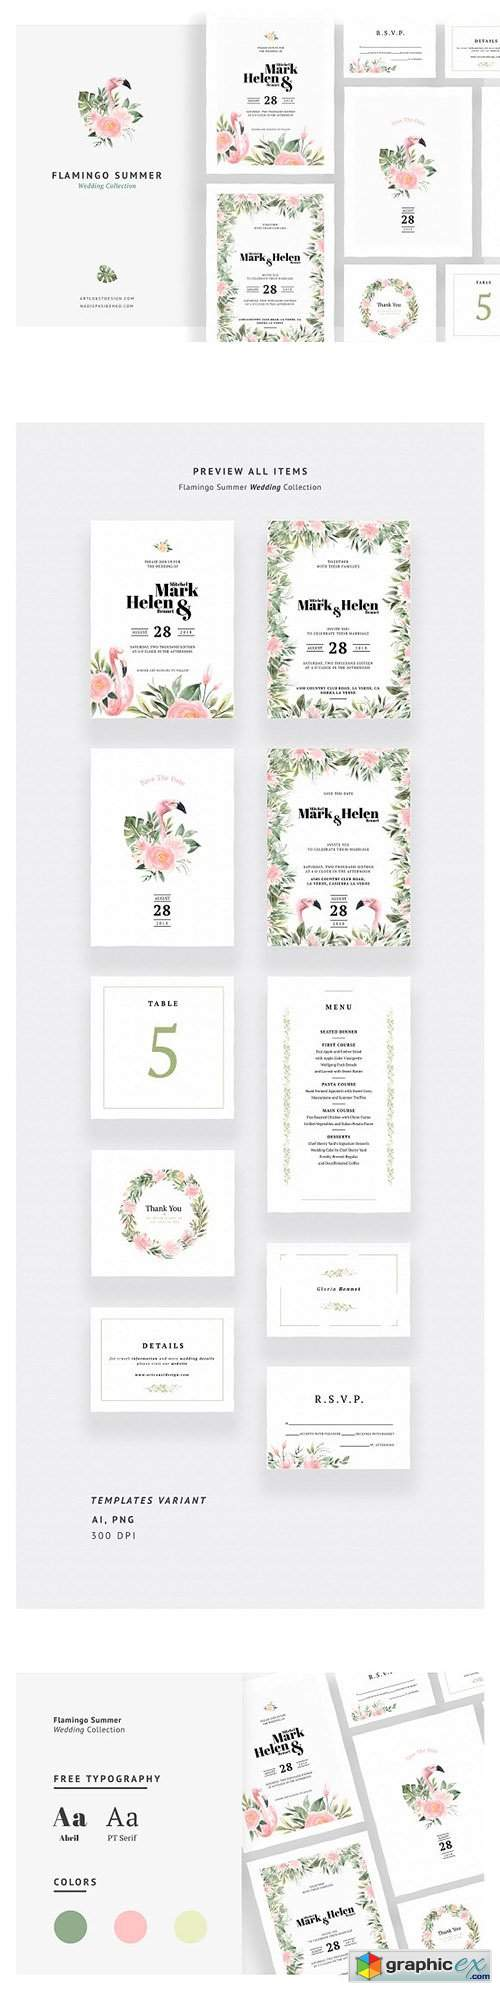 Flamingo Summer Wedding Invitations